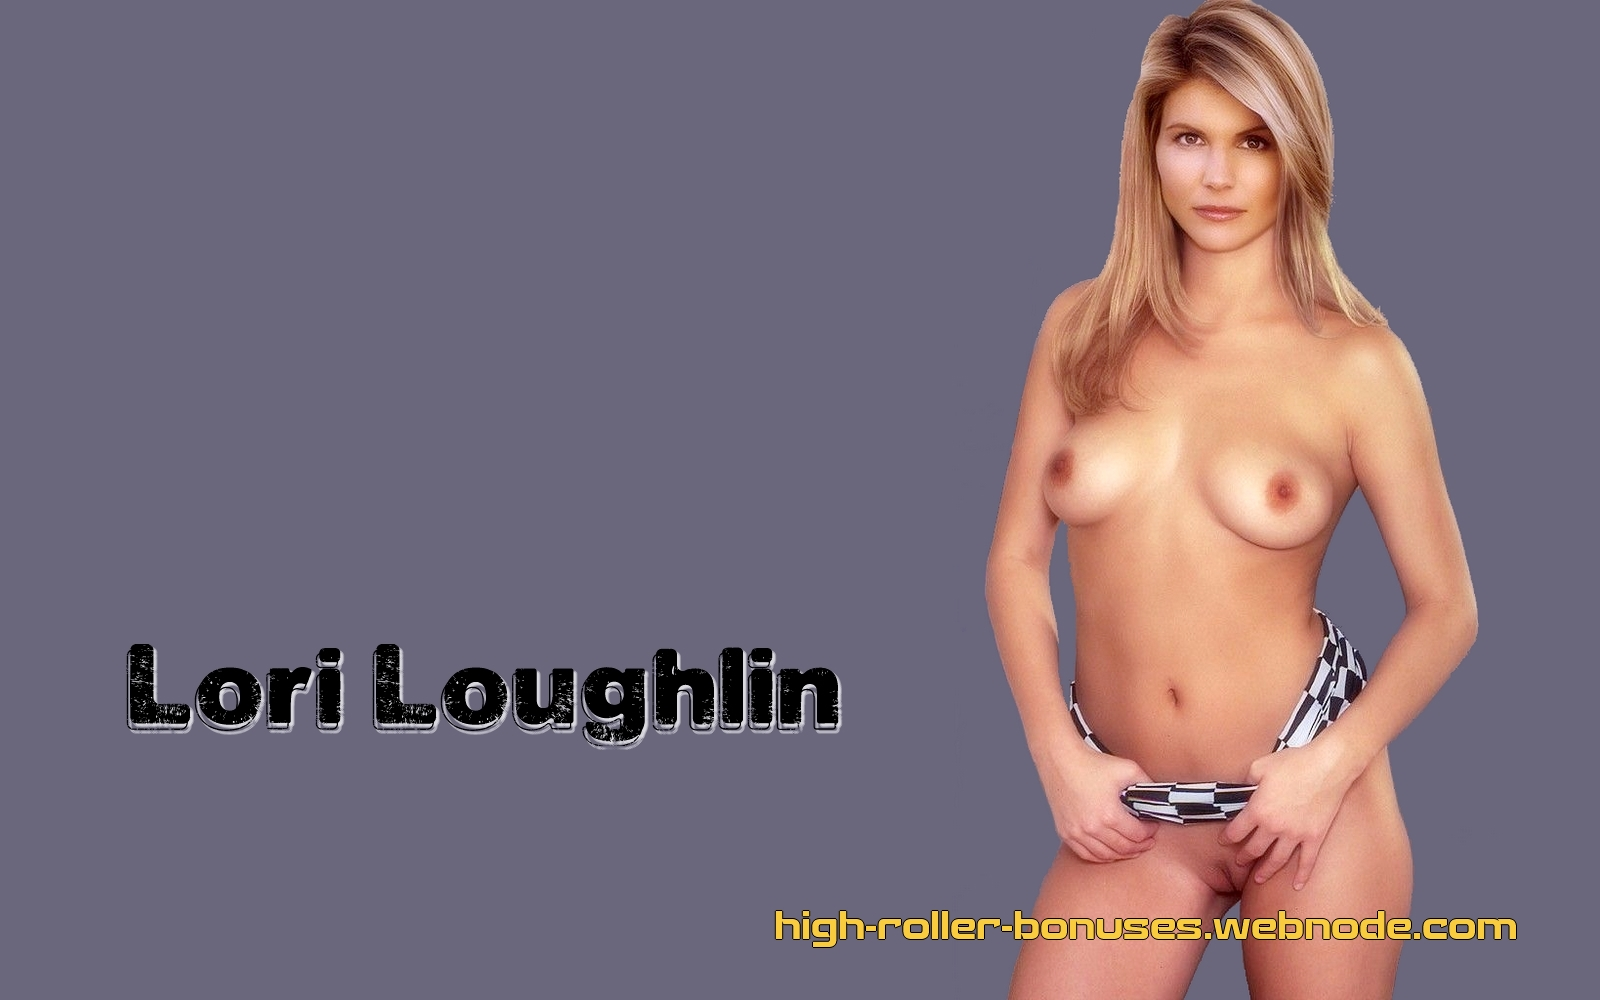 lori-loughlin-naked-faked-muscle-girl-xl-titstures